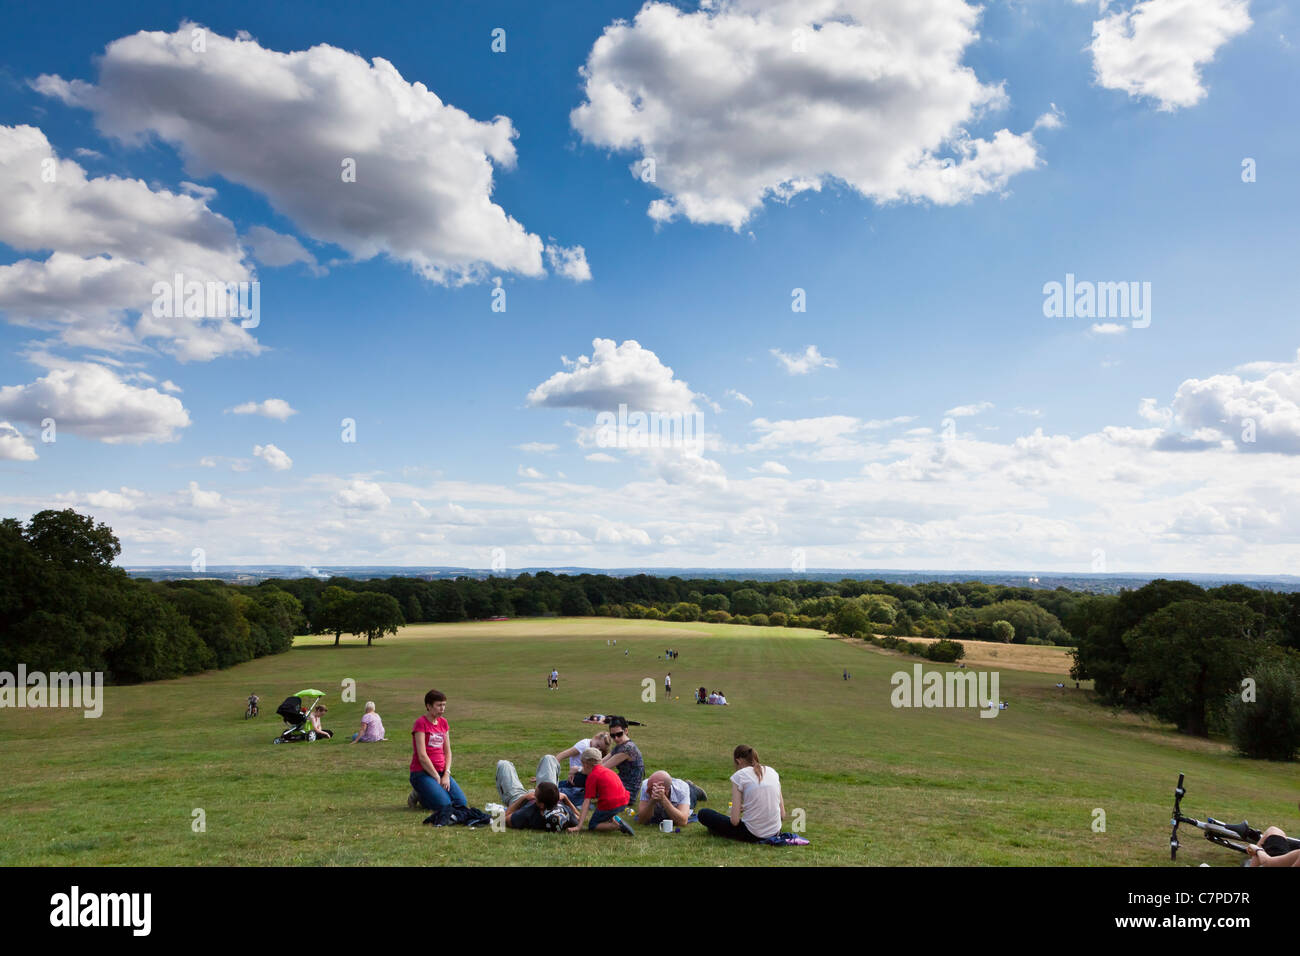 Families wait for a free band concert by Gambler at Oxleas Wood, Bexley, Kent, UK - Stock Image